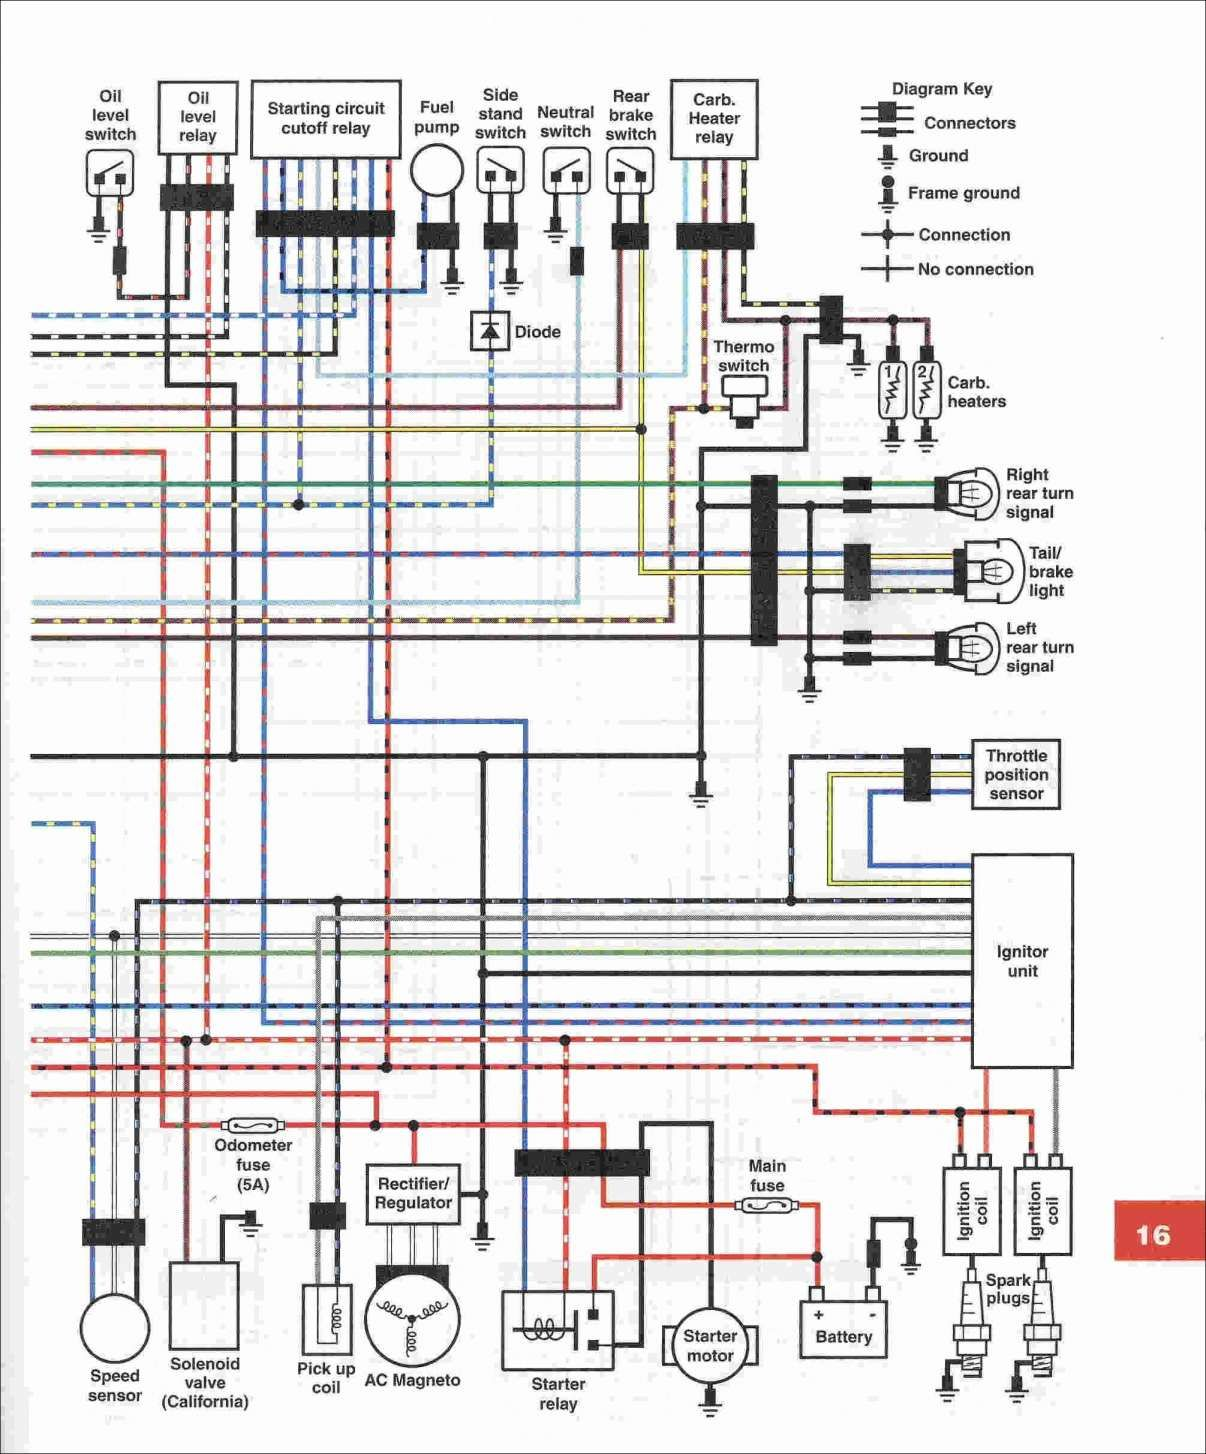 150cc Chinese Motorcycle Wiring Diagram And Wiring Diagram For Chinese Four Wheeler Everyday Wi In 2021 Electrical Circuit Diagram Diagram Types Of Electrical Wiring